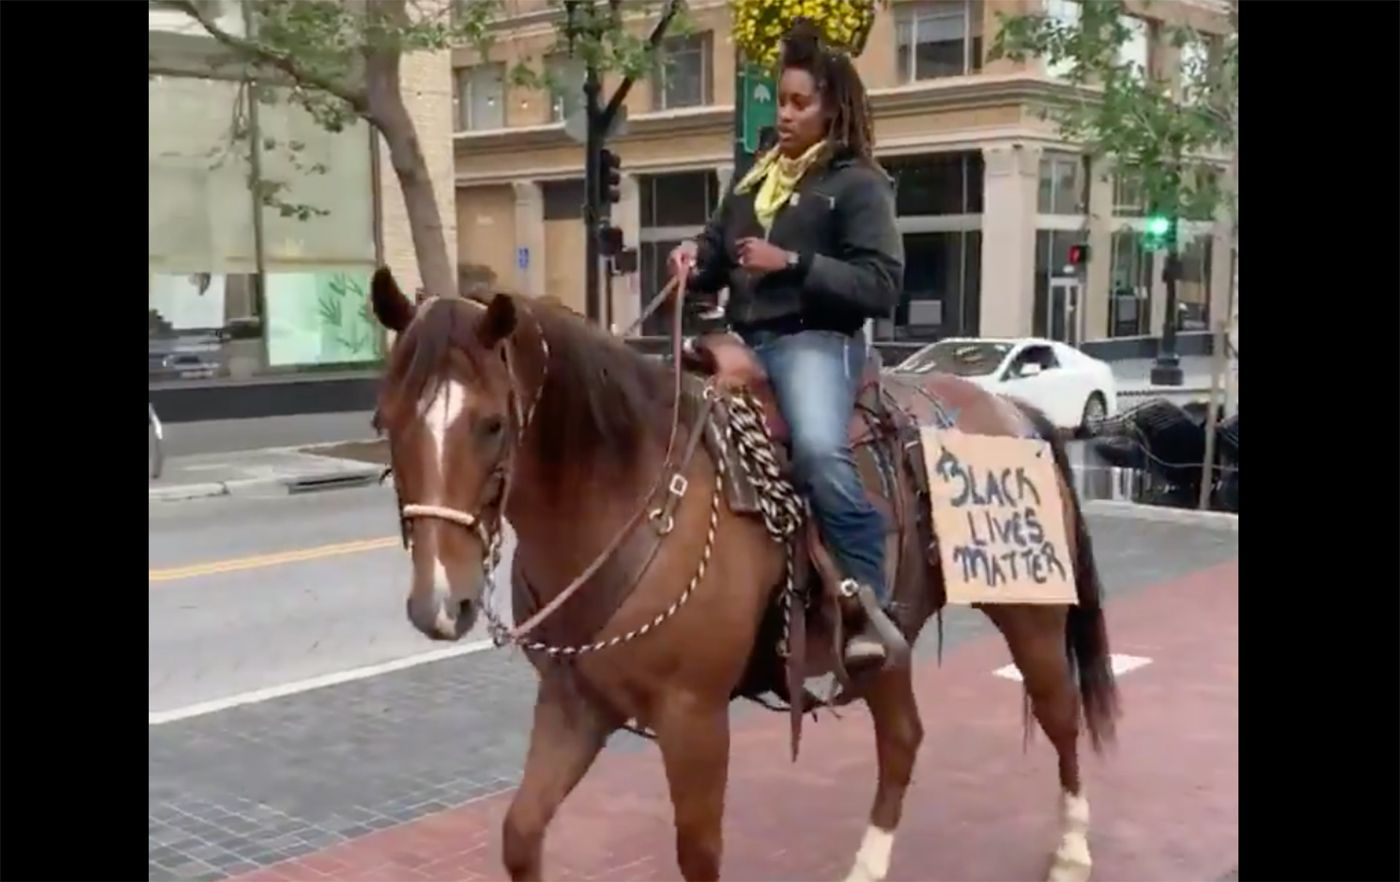 Black Woman on Horse At Oakland Protest Says She Knew The Image Would Be Powerful